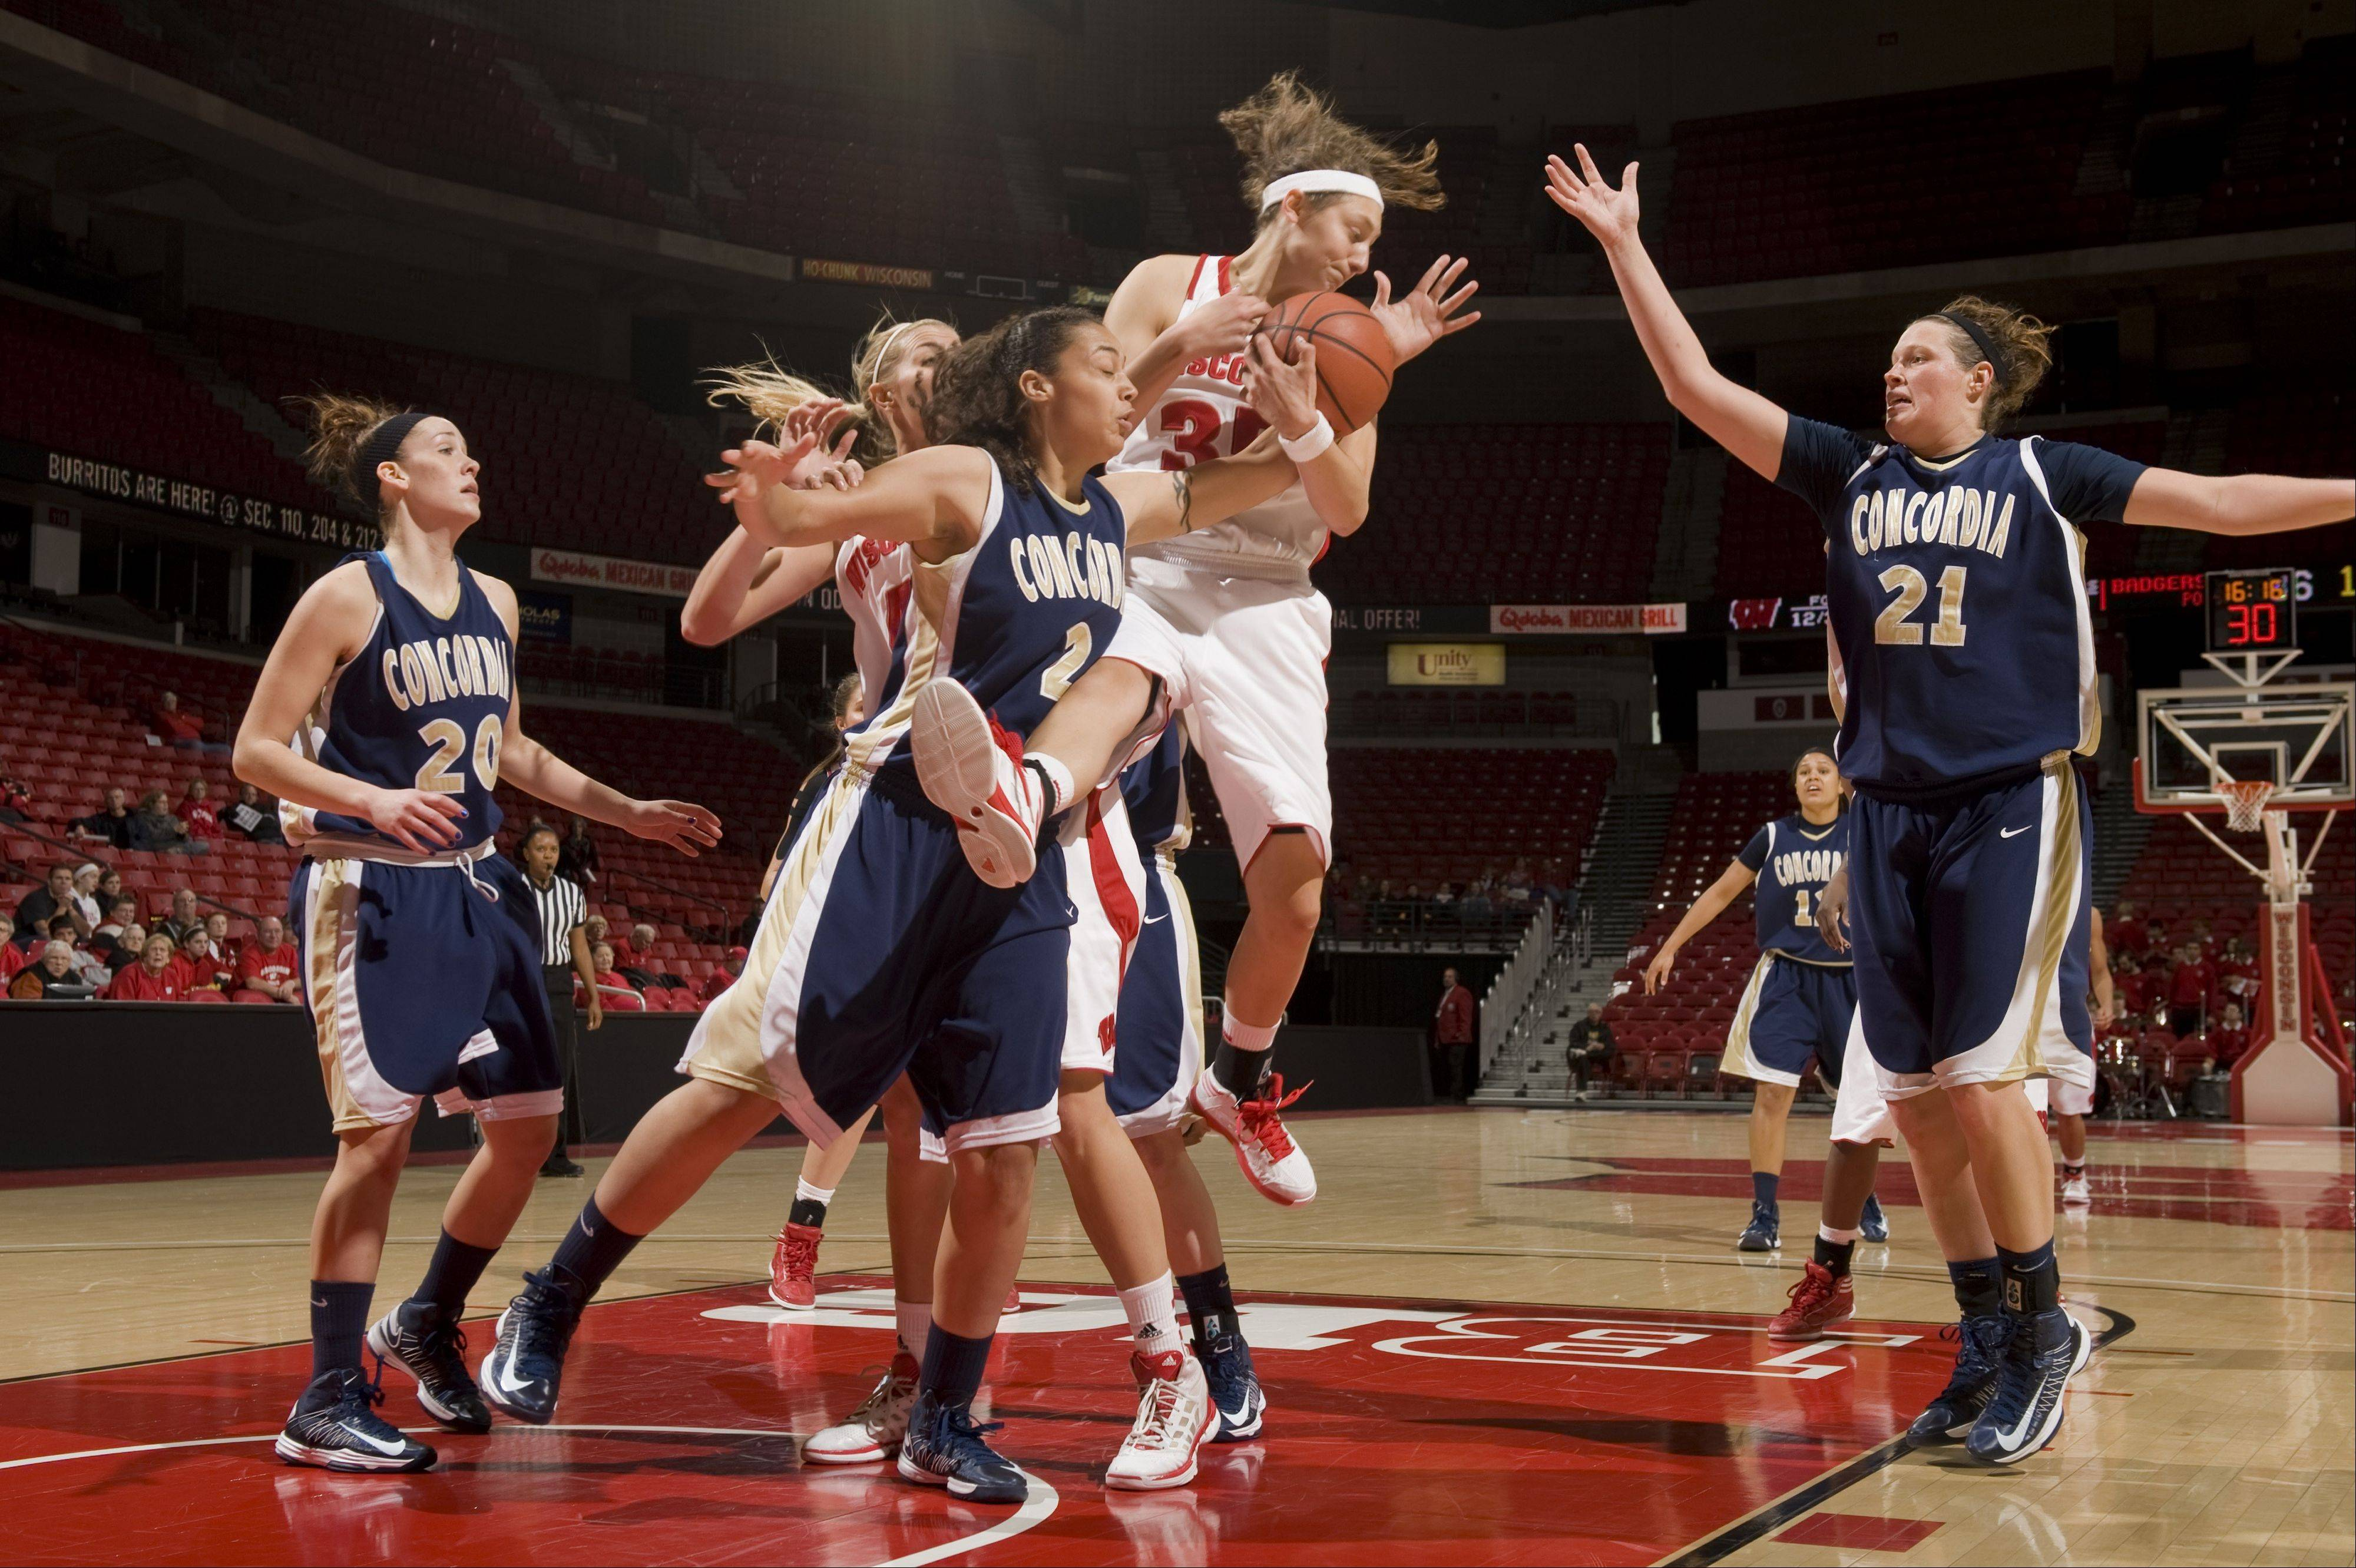 Former Bartlett High School basketball star Jacki Gulczynski, shown here grabbing a rebound against Concordia, was named Big Ten Player of the Week after averageing 20 points and 12 rebounds in a pair of games last week.